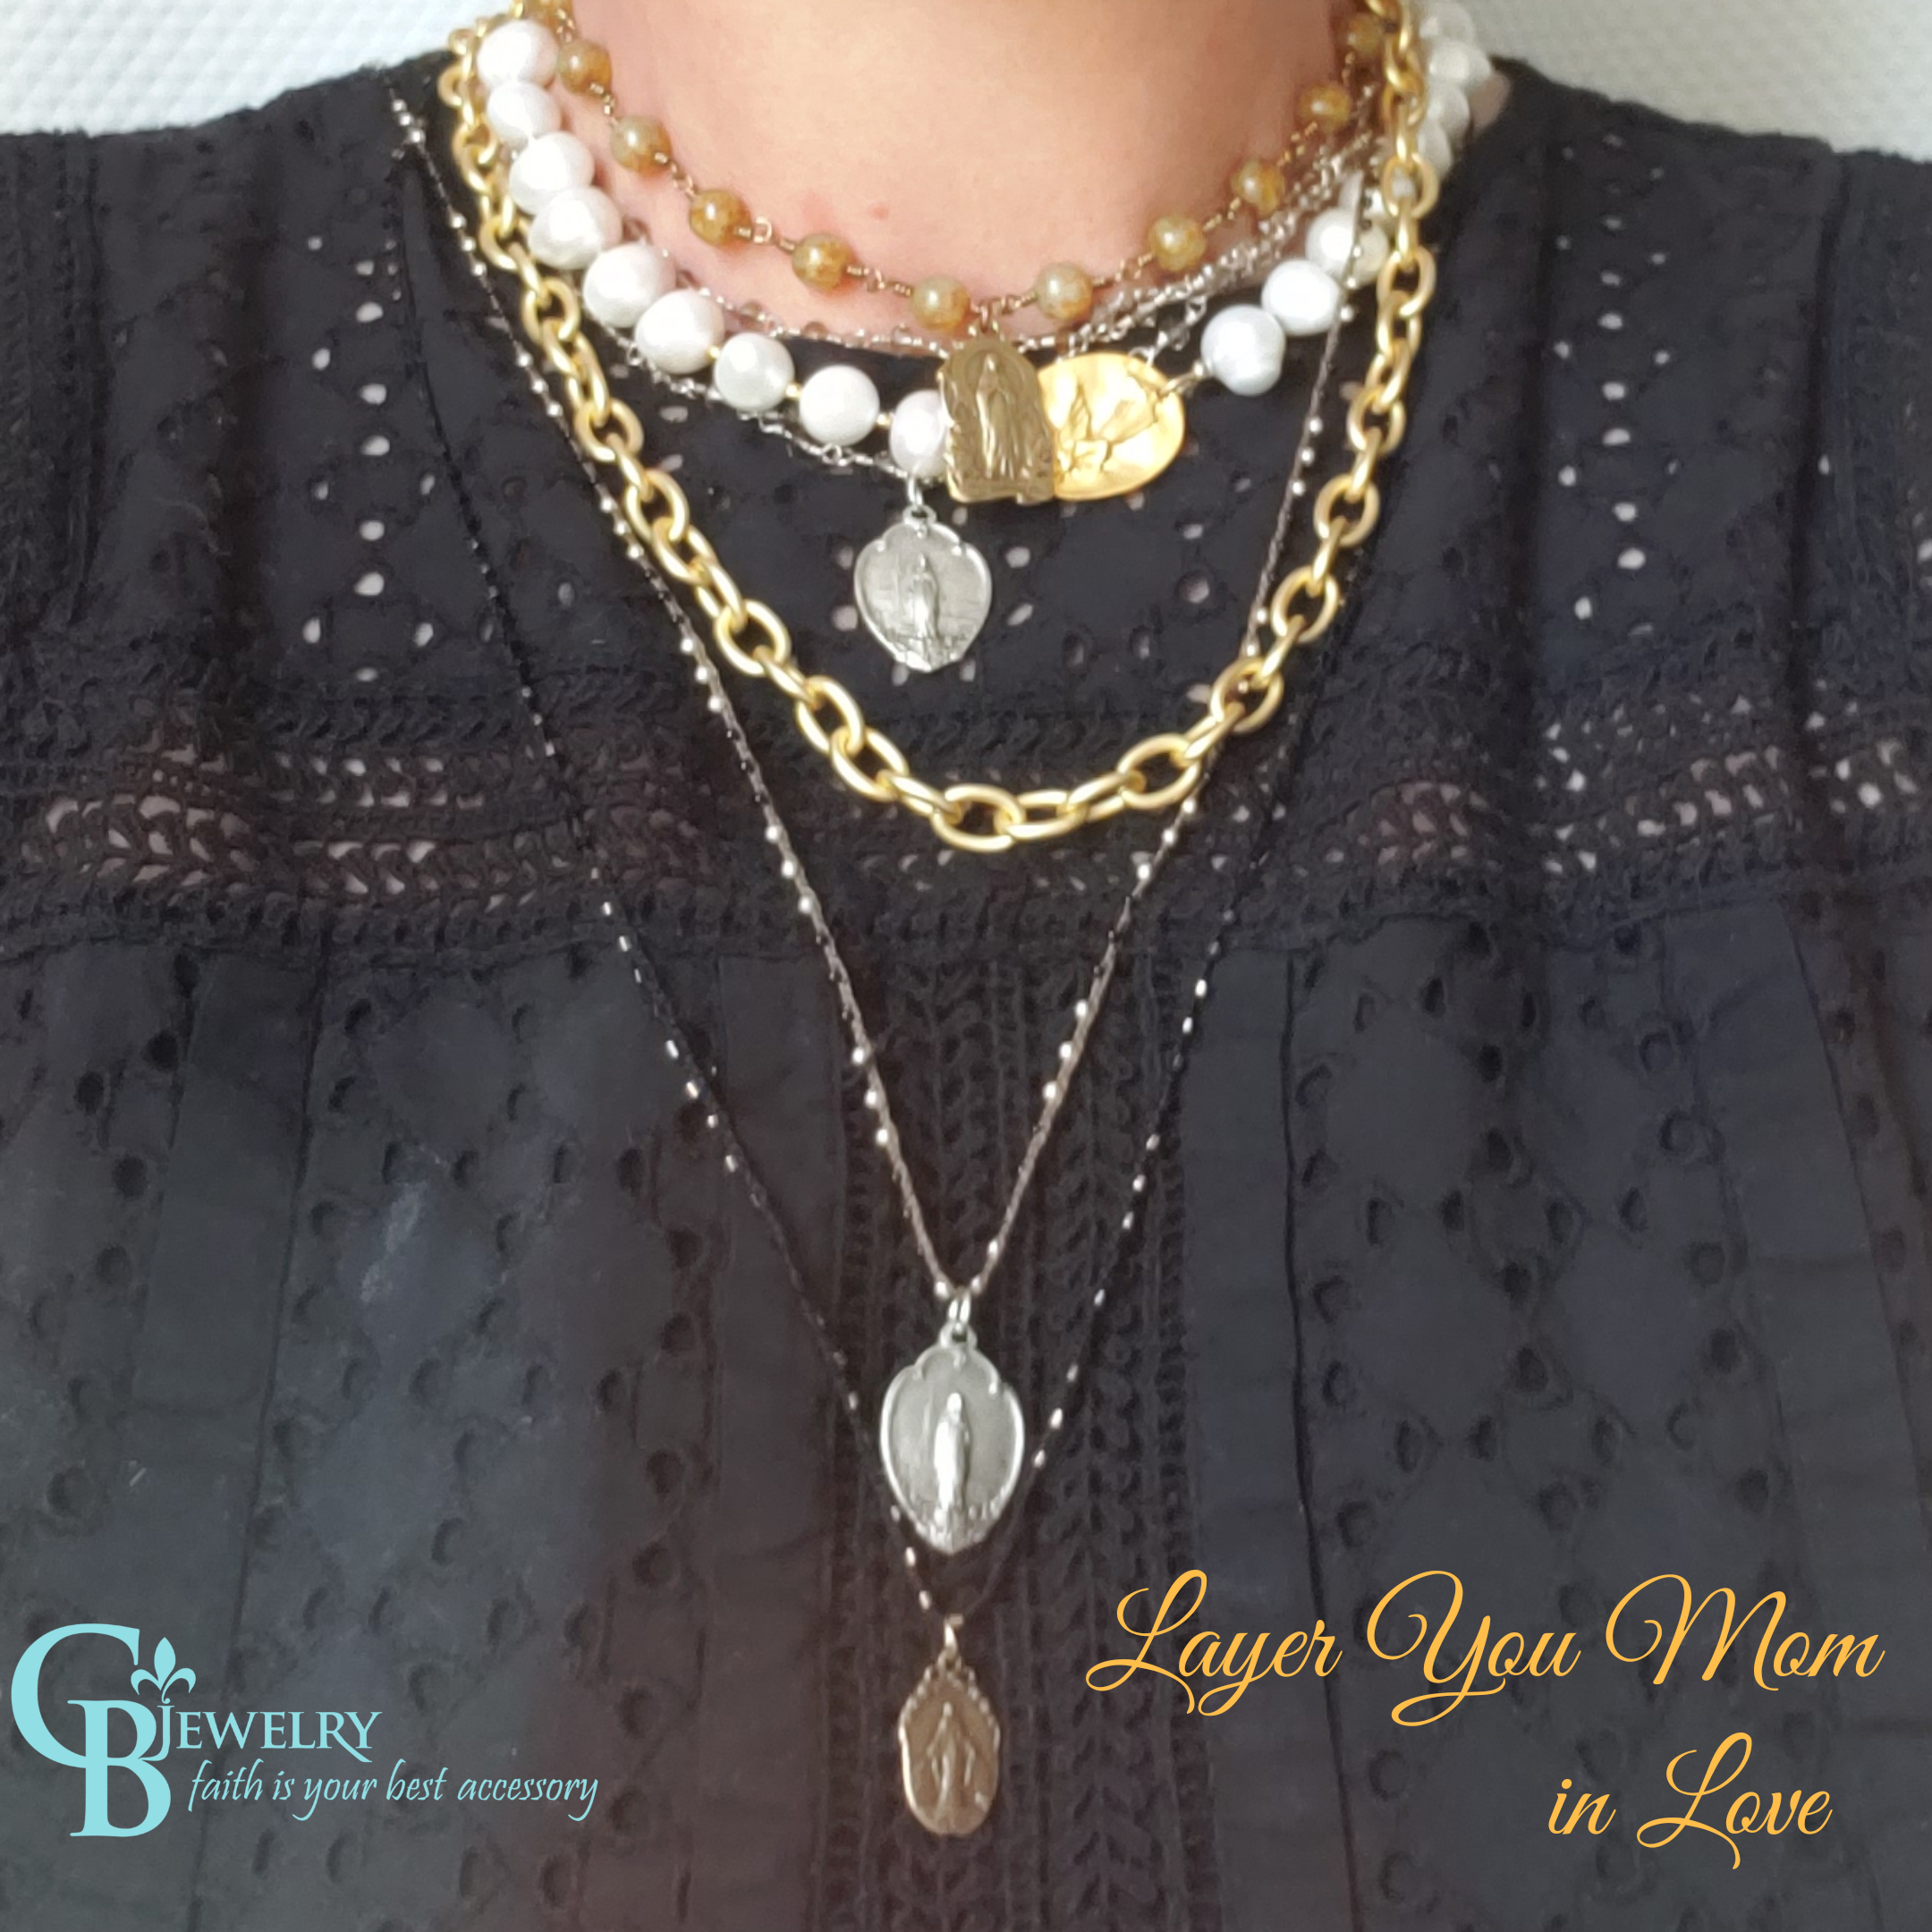 Mary's Charm necklace